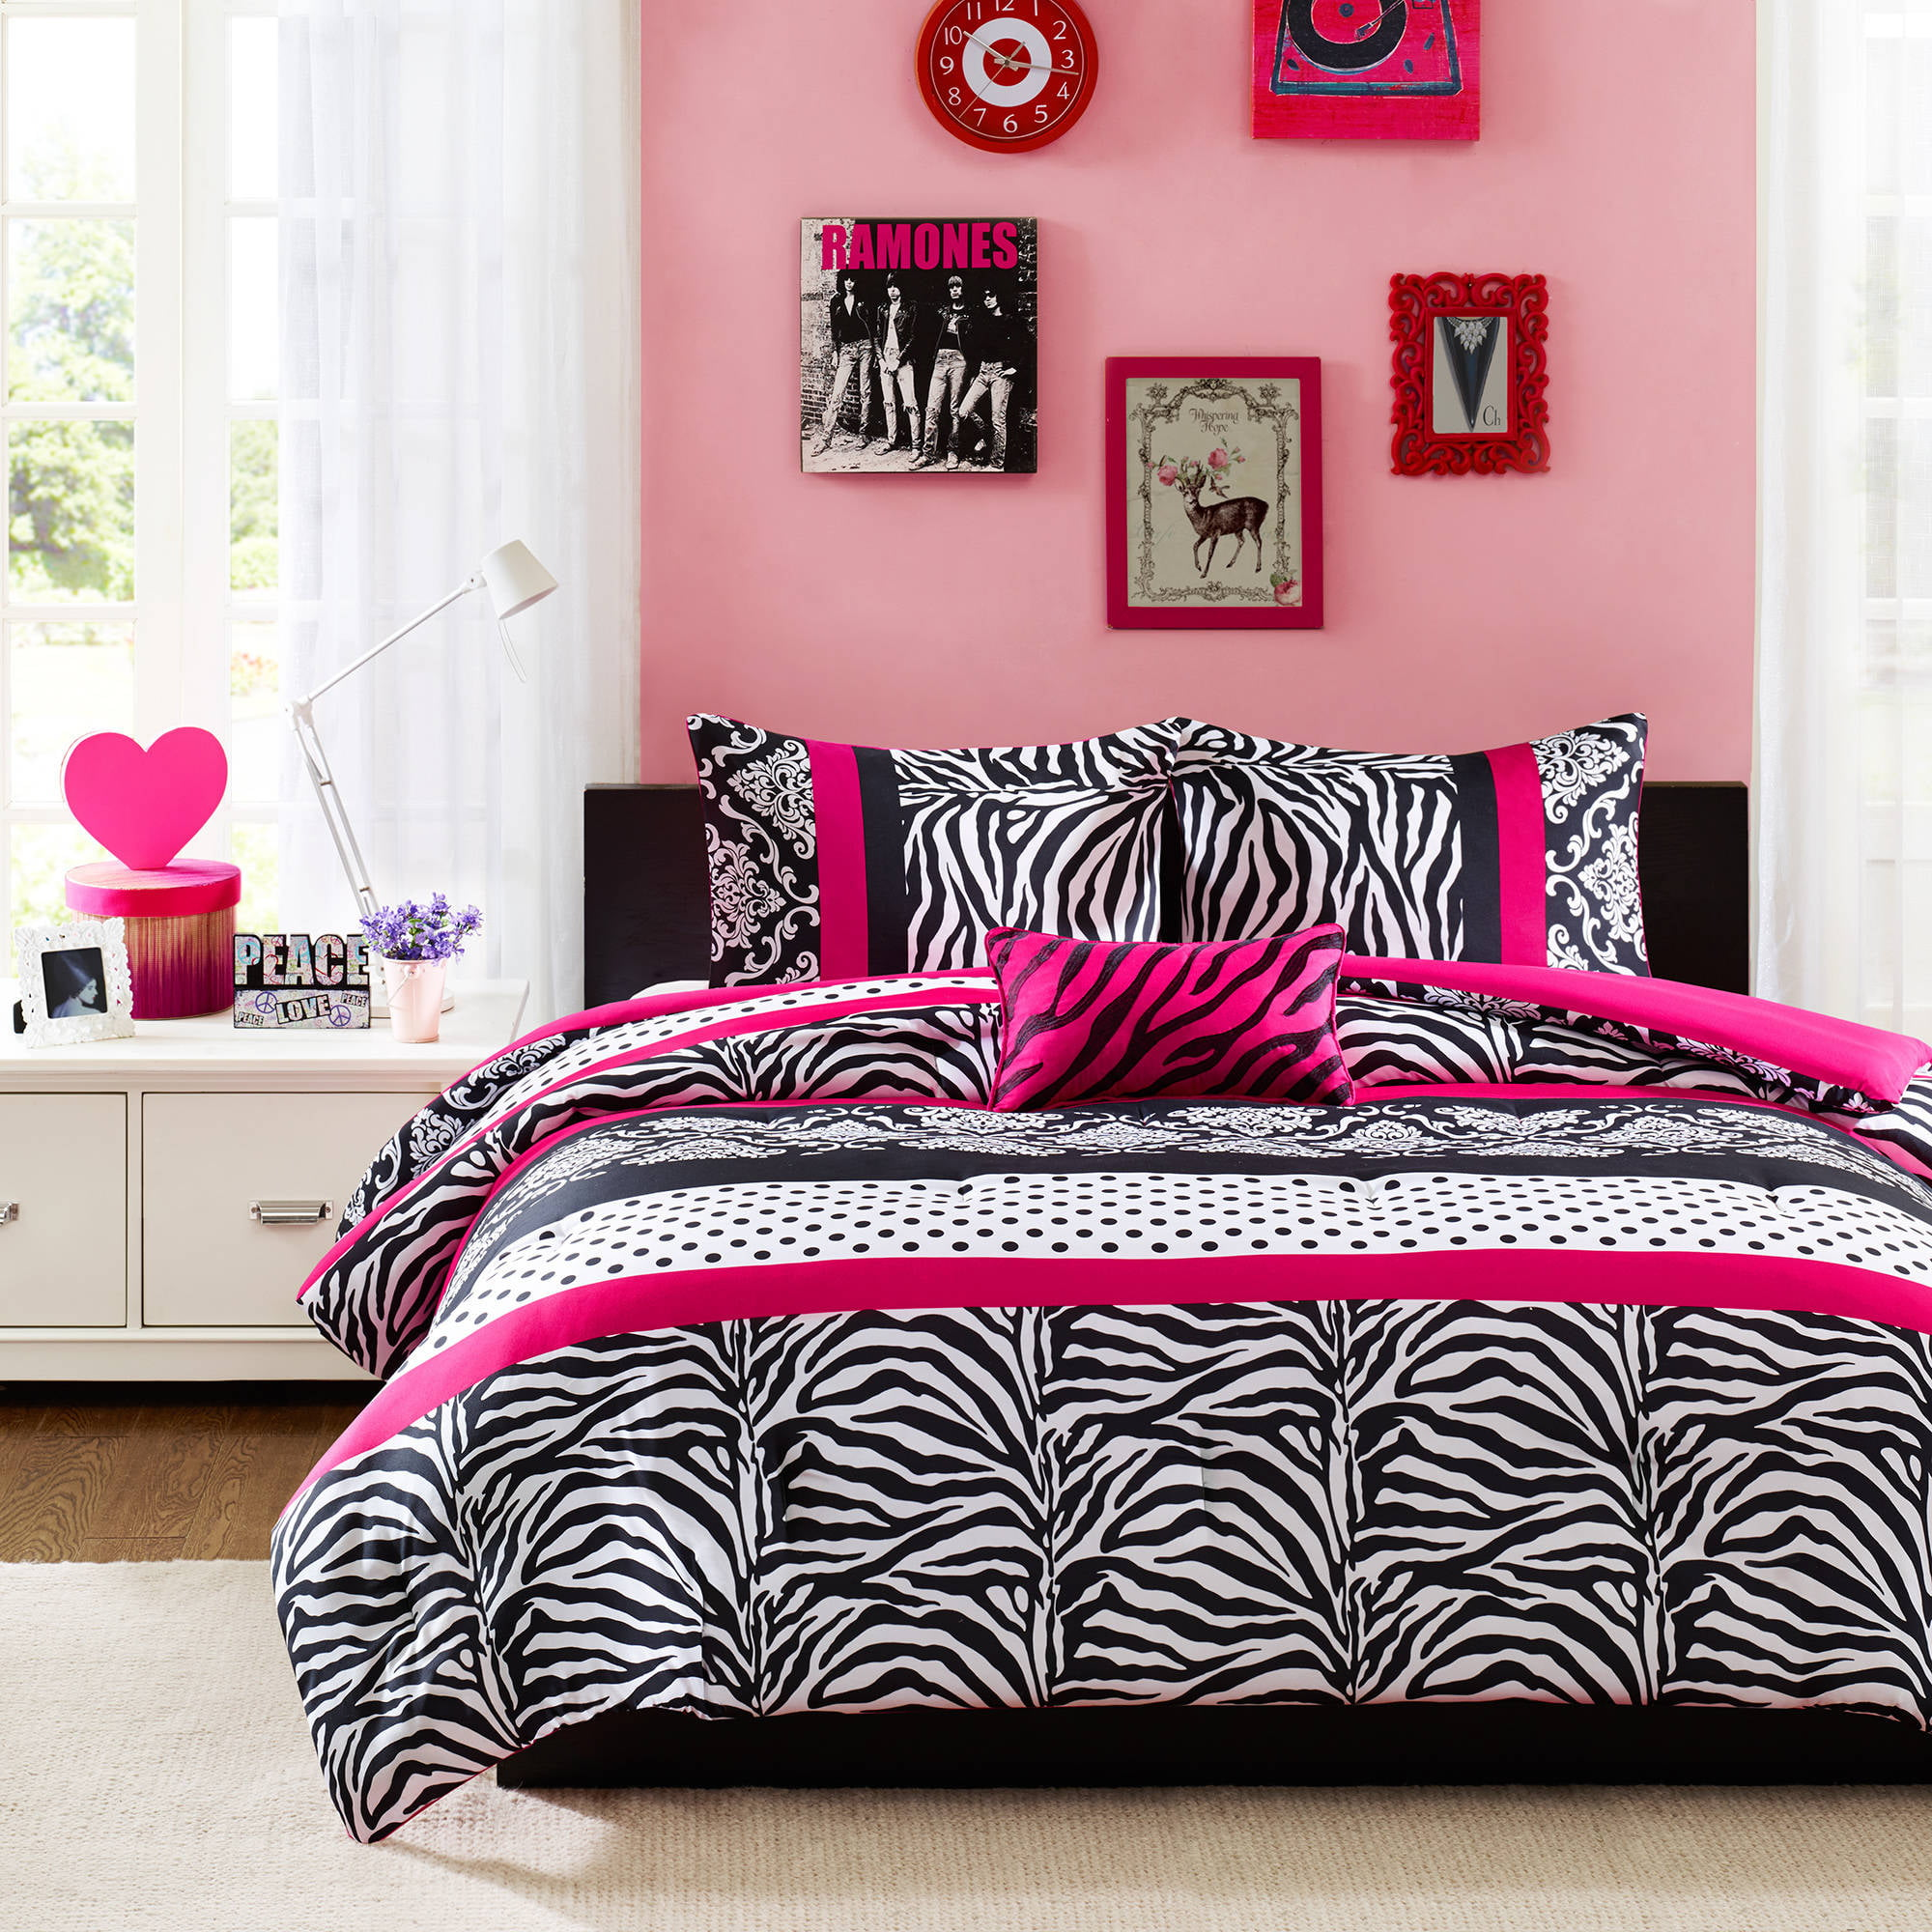 sets simple lovable together small round images with crystal lines grand teen bedding chandelier set table queen dots blue dw really then floral cool bed bedroom side teenage red